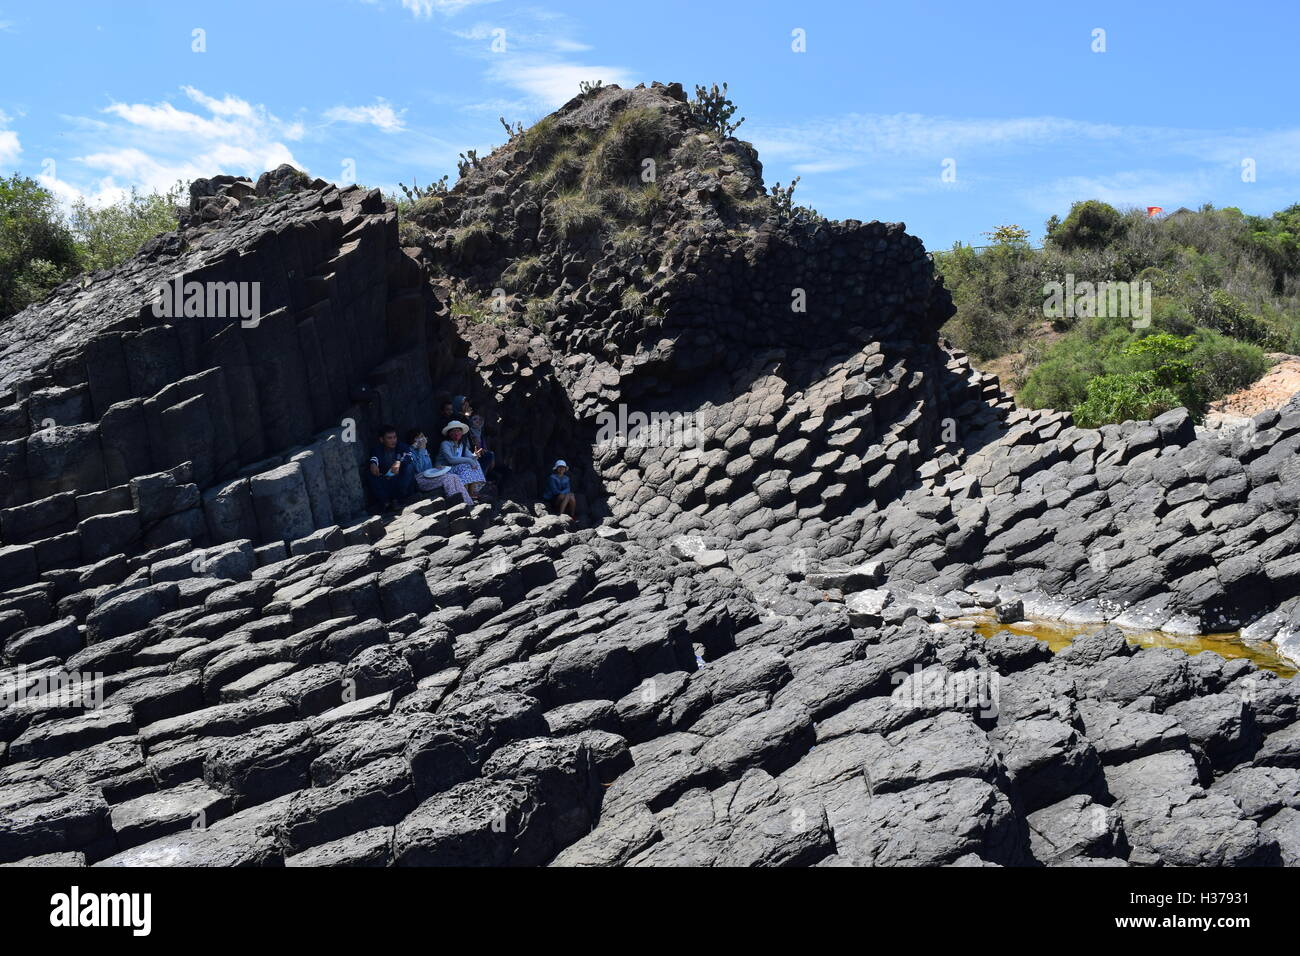 PHU YEN, VIETNAM, August 9th, 2016: tourists hiding in the shadow from the sunlight in Vietnamese natural heritage - Stock Image